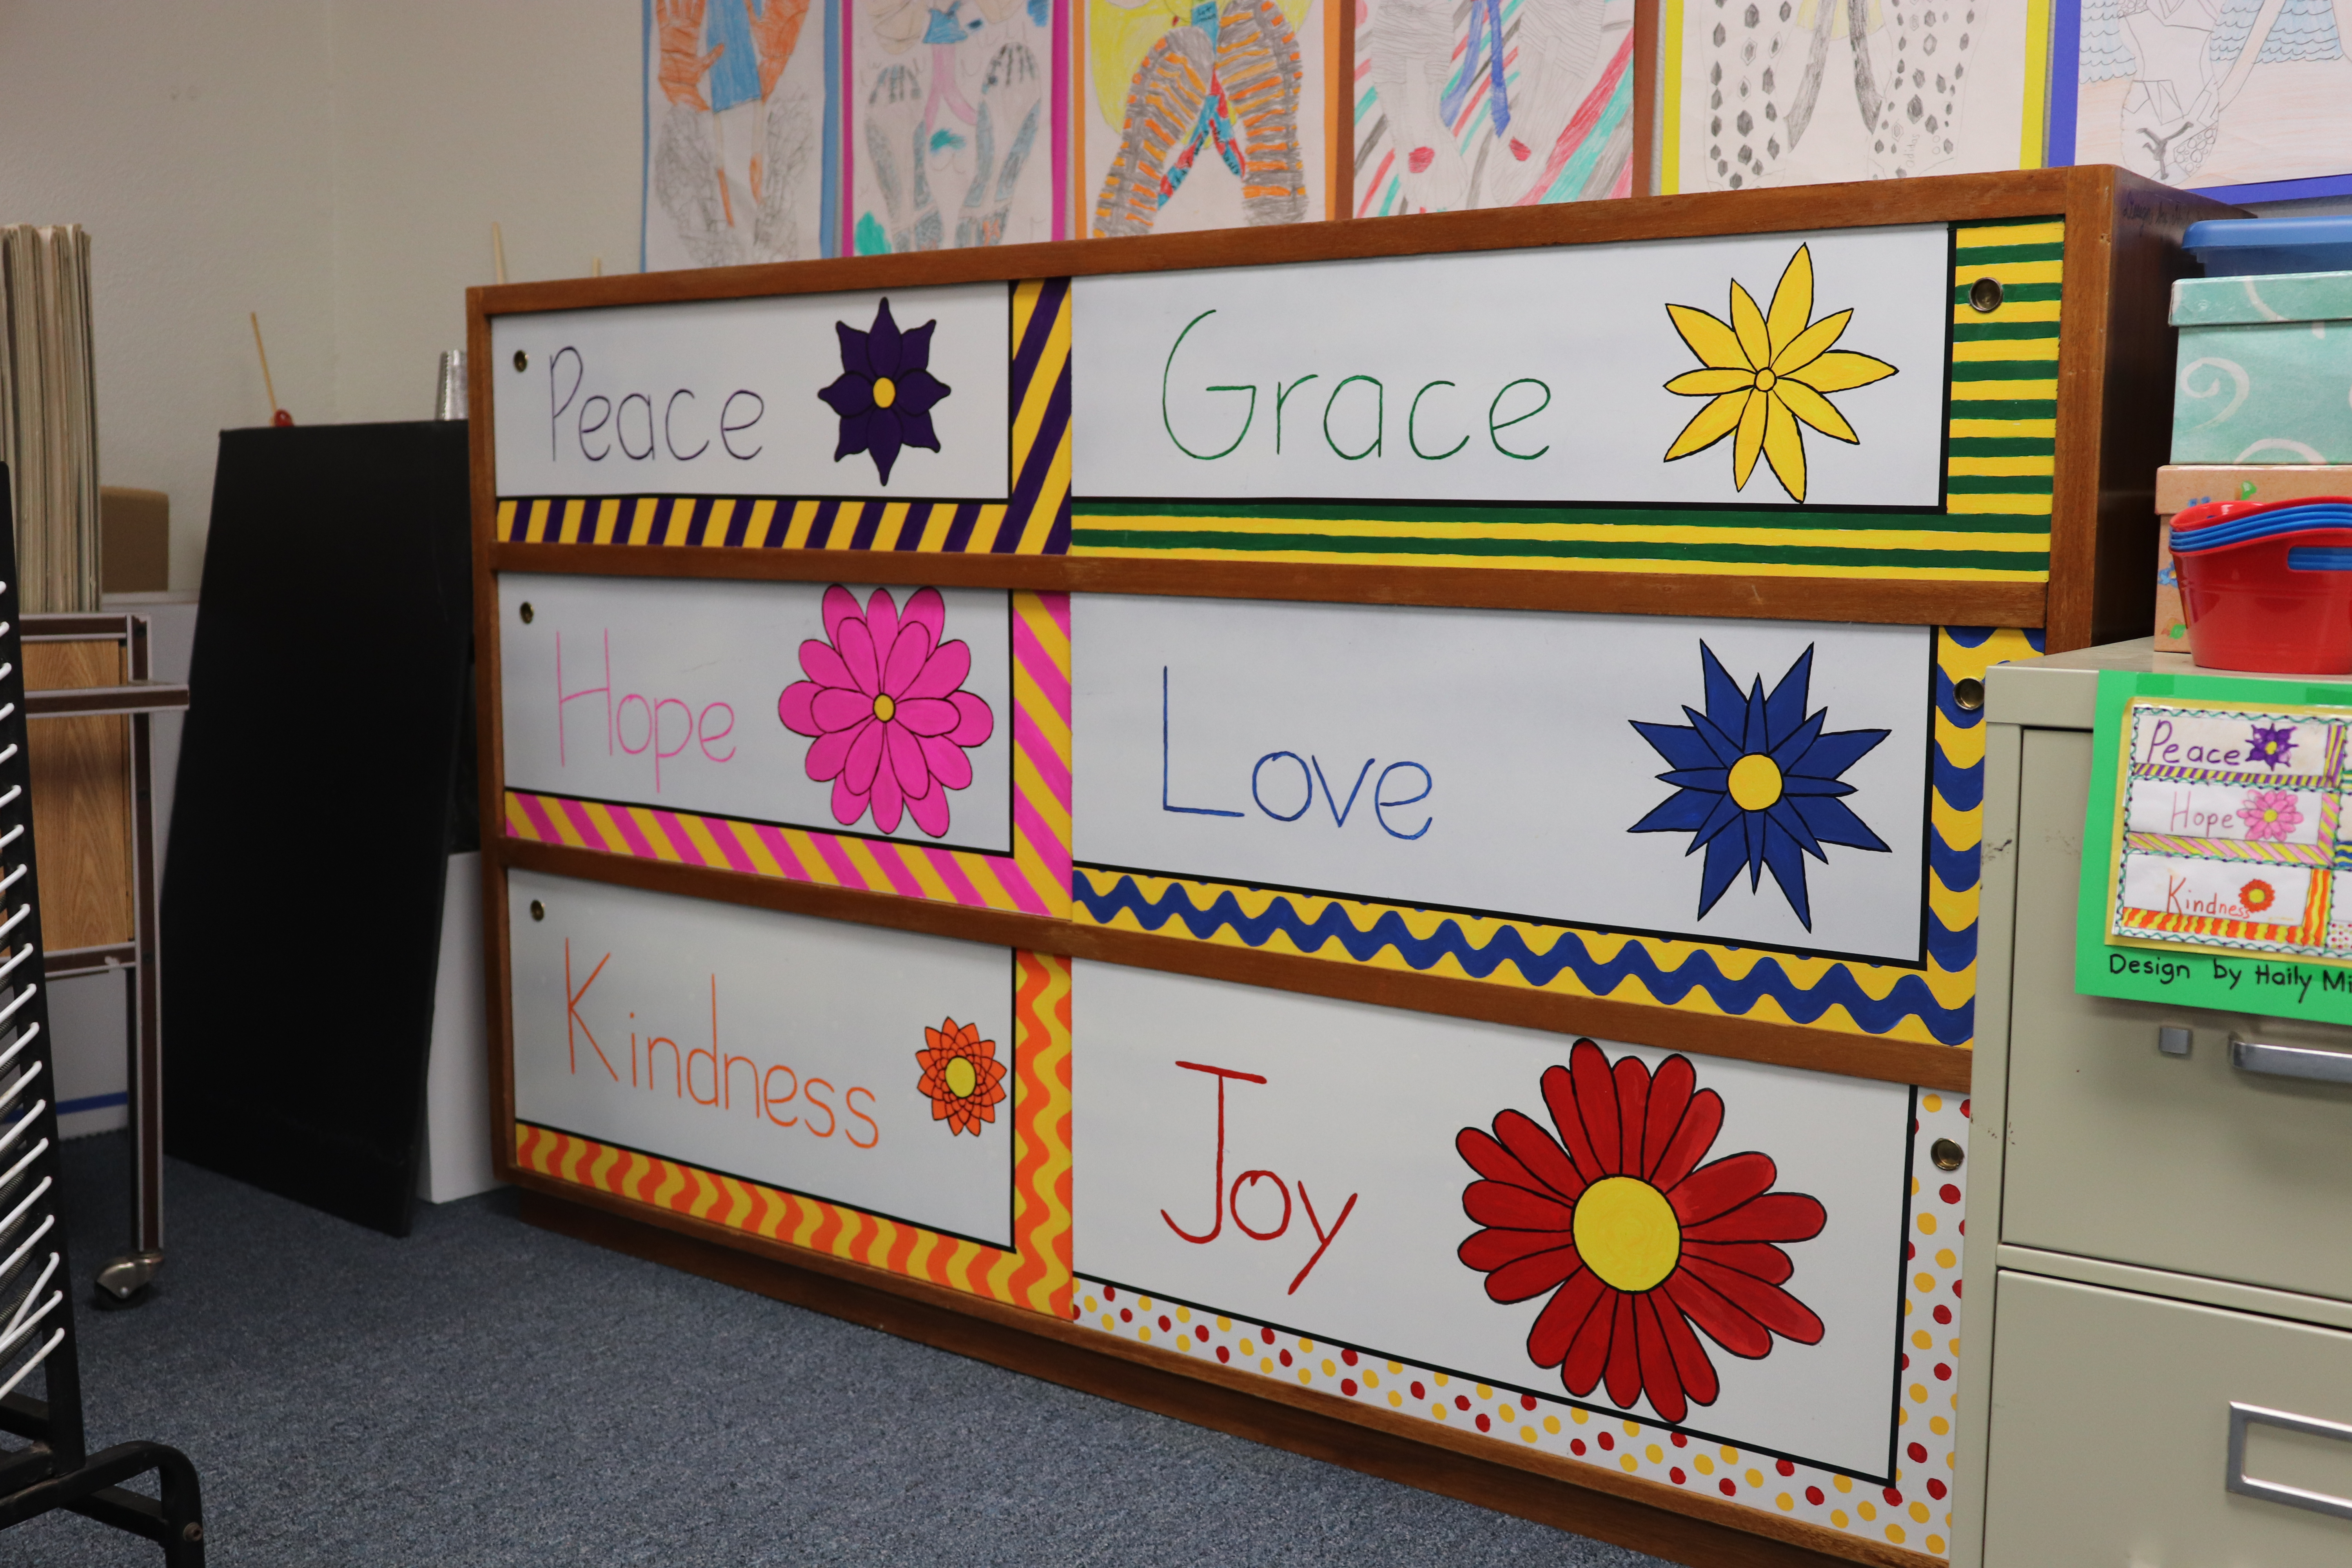 Peace Grace Hope Love Kindess Joy. christian private school. top christian private school. christian school. tempe AZ. tempe. gca. grace christian school.